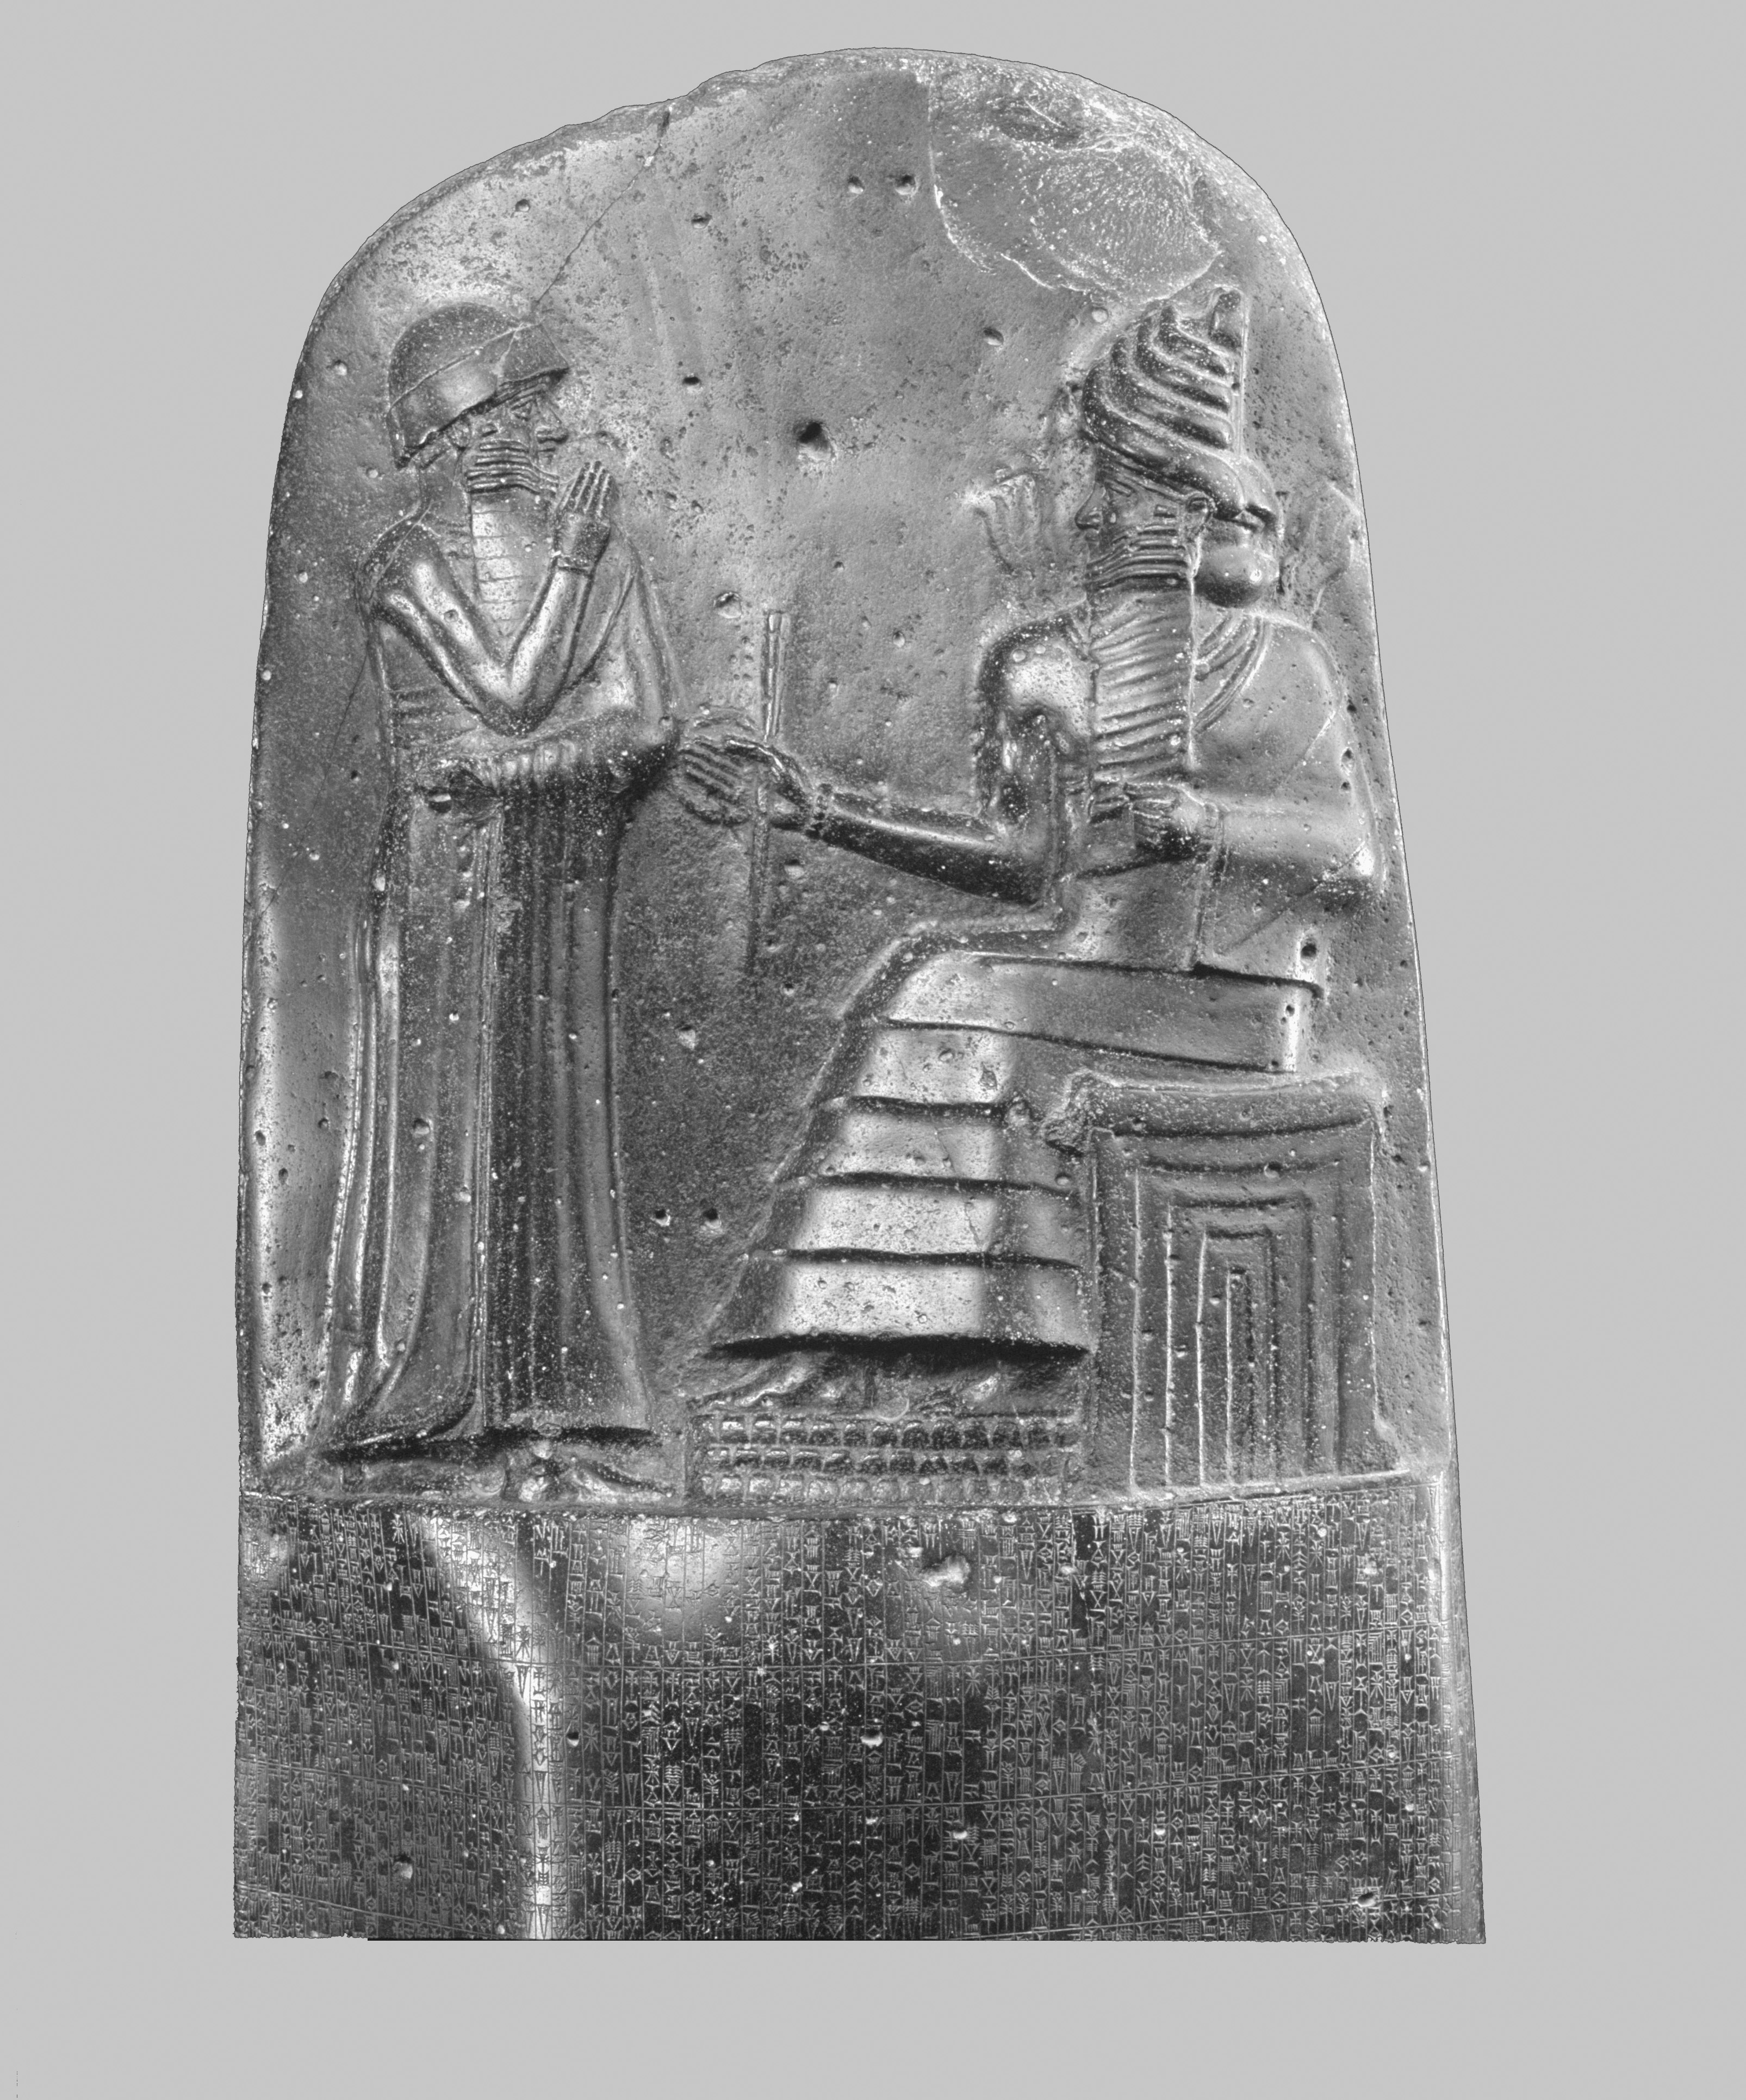 a biography of hammurabi the king of babylonia and the sixth ruler of the amorite dynasty What did sargon and hammurabi have in the sixth king in the amorite dynasty, hammurabi hammurabi was known as the babylonia king and a superior ruler.